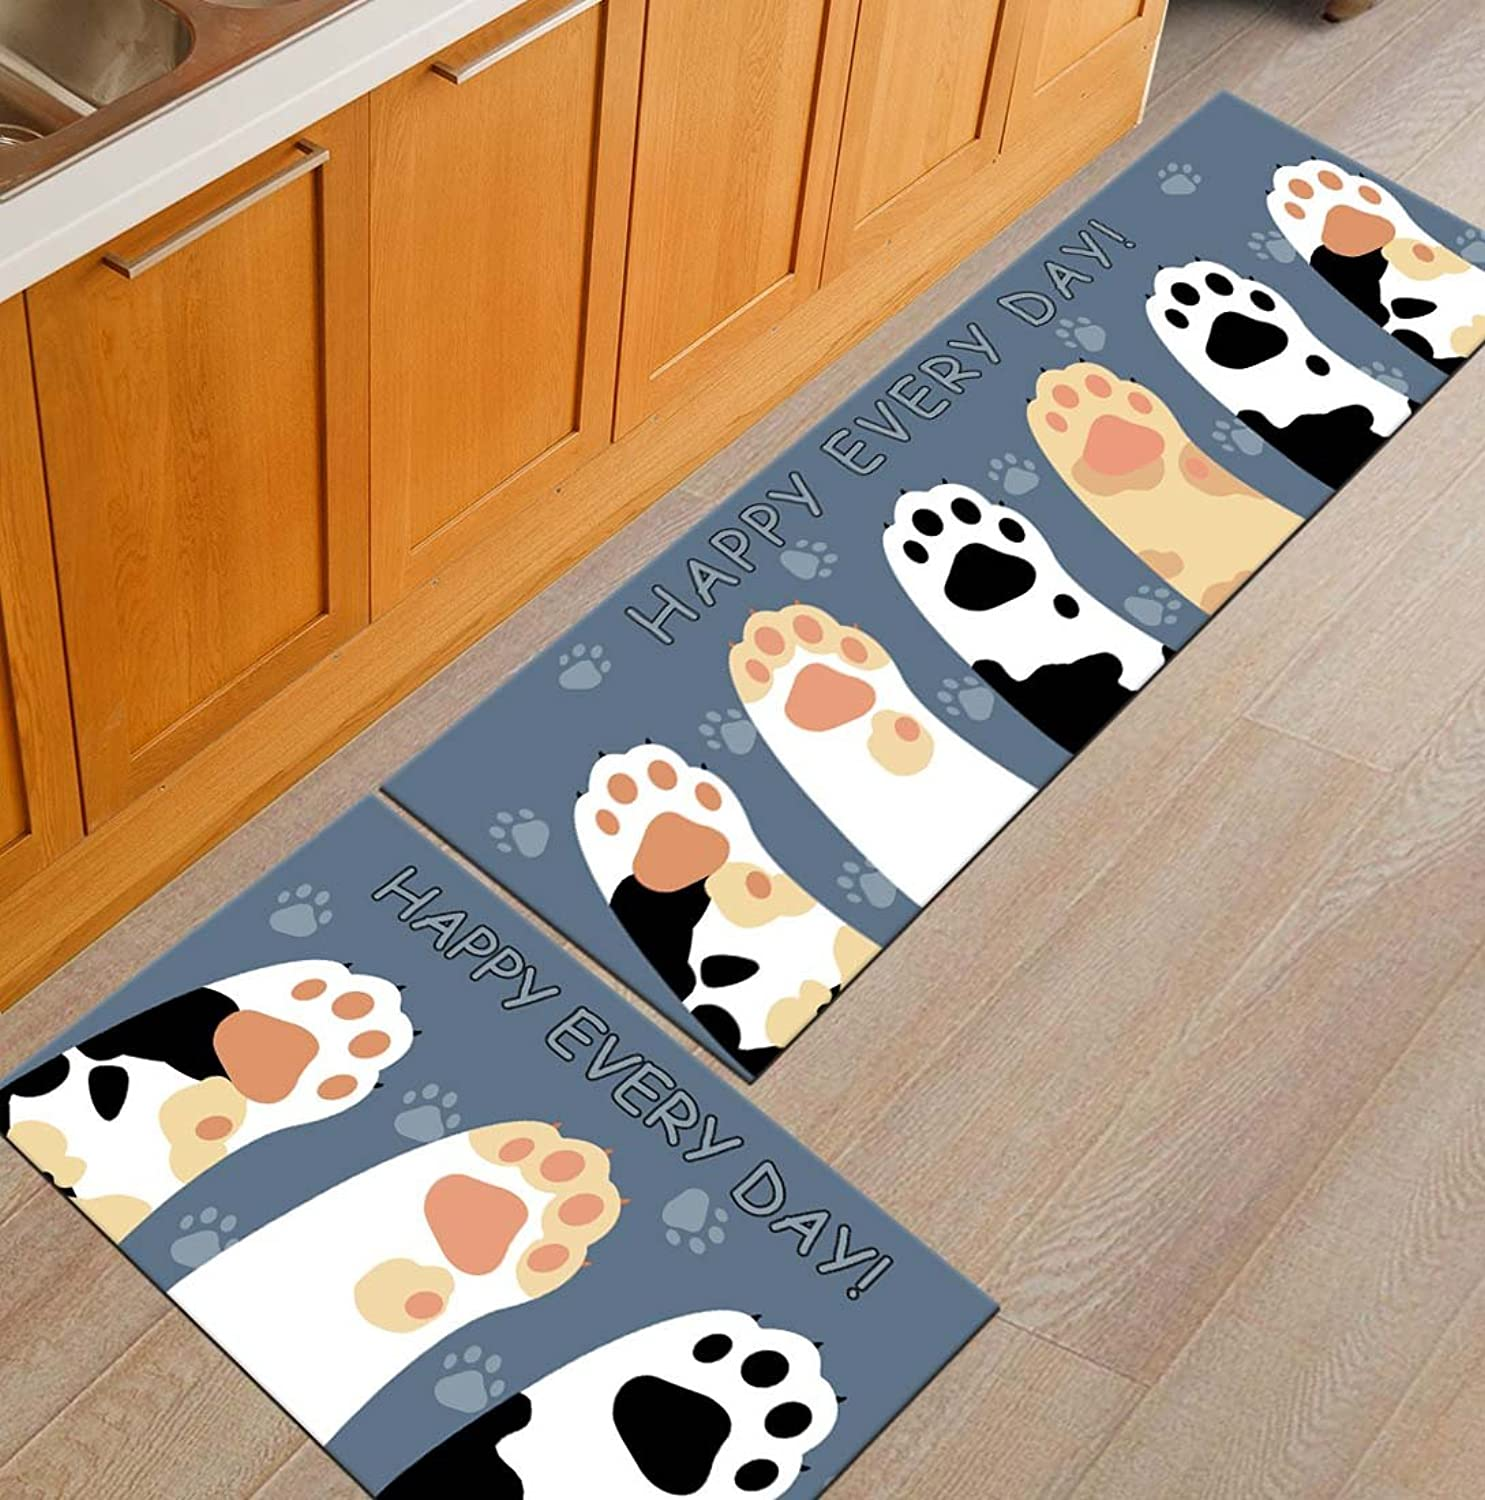 BABE MAPS Indoor Outdoor Doormat Entrance Welcome Mat Absorbent Runner Inserts Non Slip Entry Rug Funny Cat Paw Prints and Texts Happy Every Day, Home Decor Inside shoes Scraper Floor Carpet 23 x70